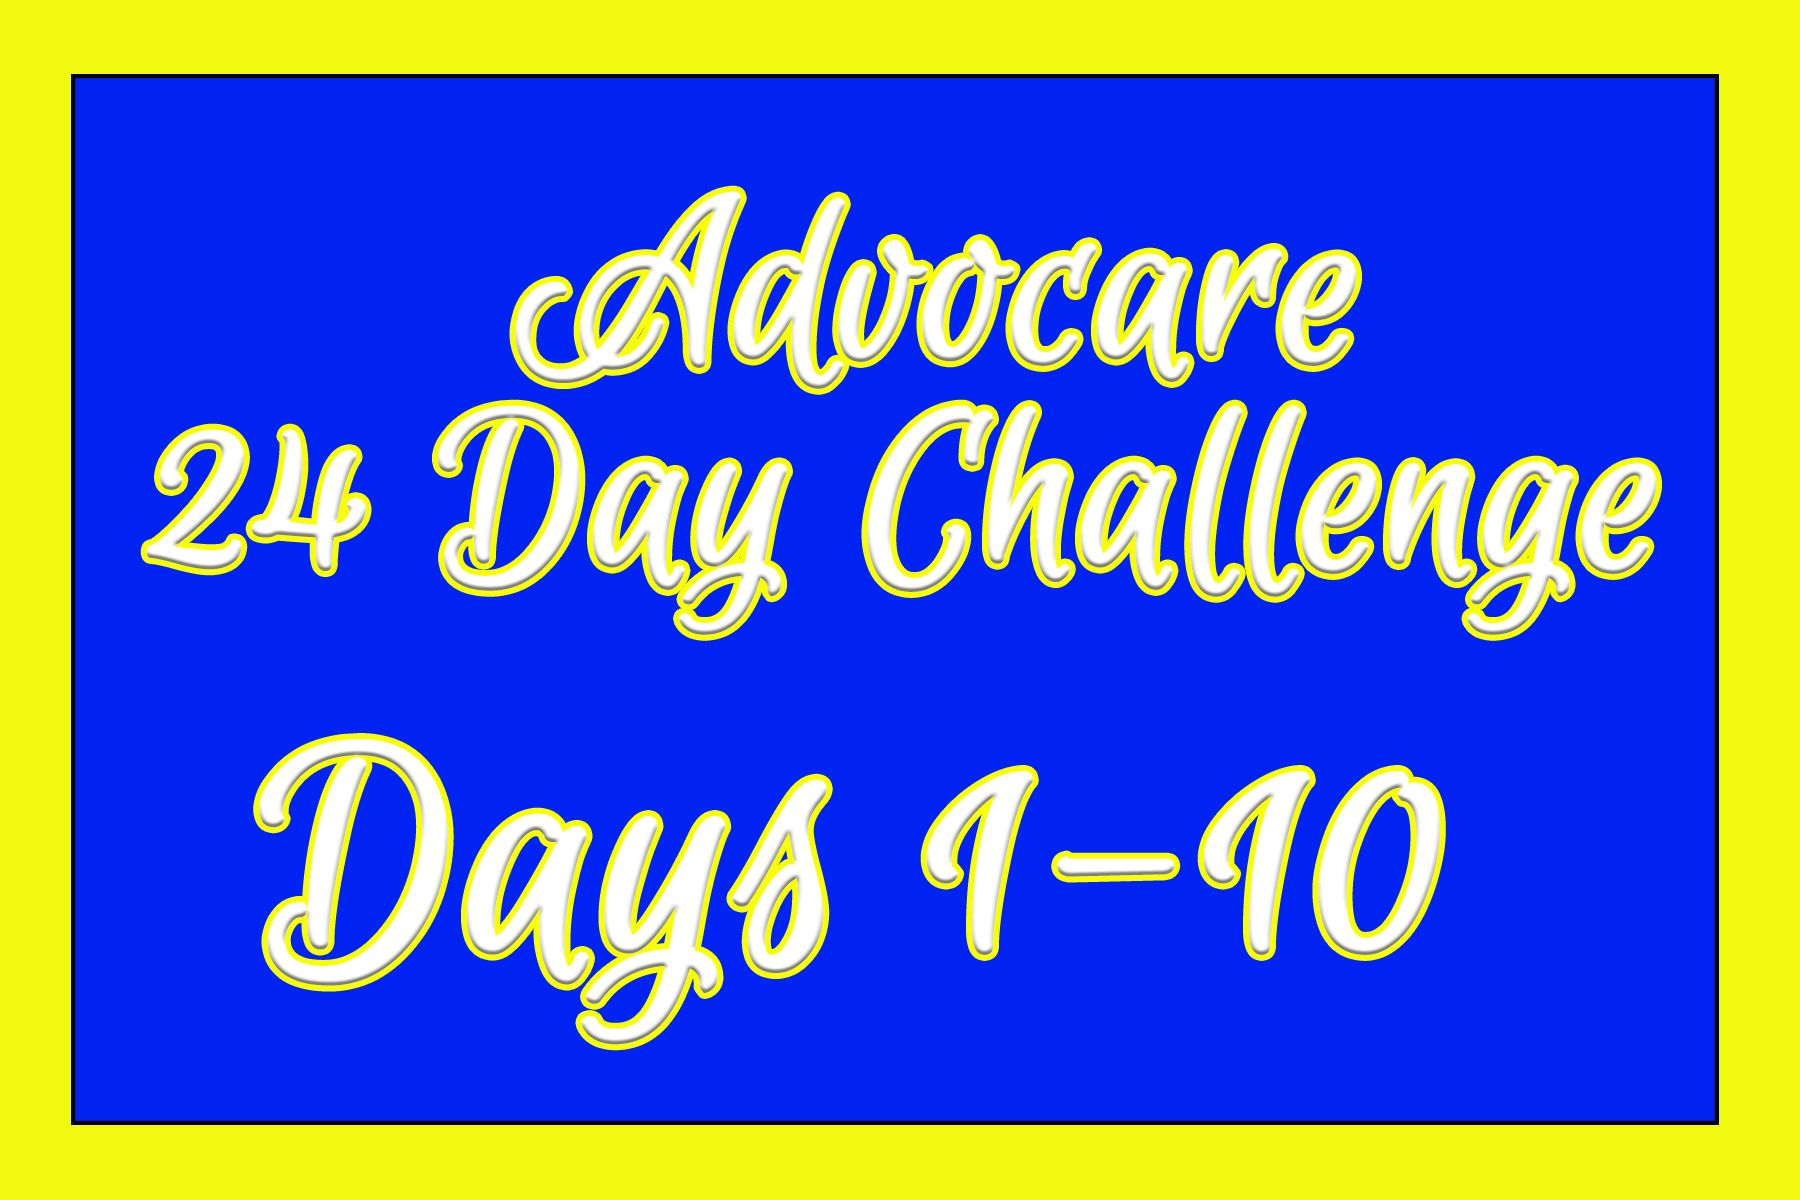 Taking the Advocare 24 Day Challenge, here is everything you need to know for the first 10 days to set yourself up for SUCCESS!